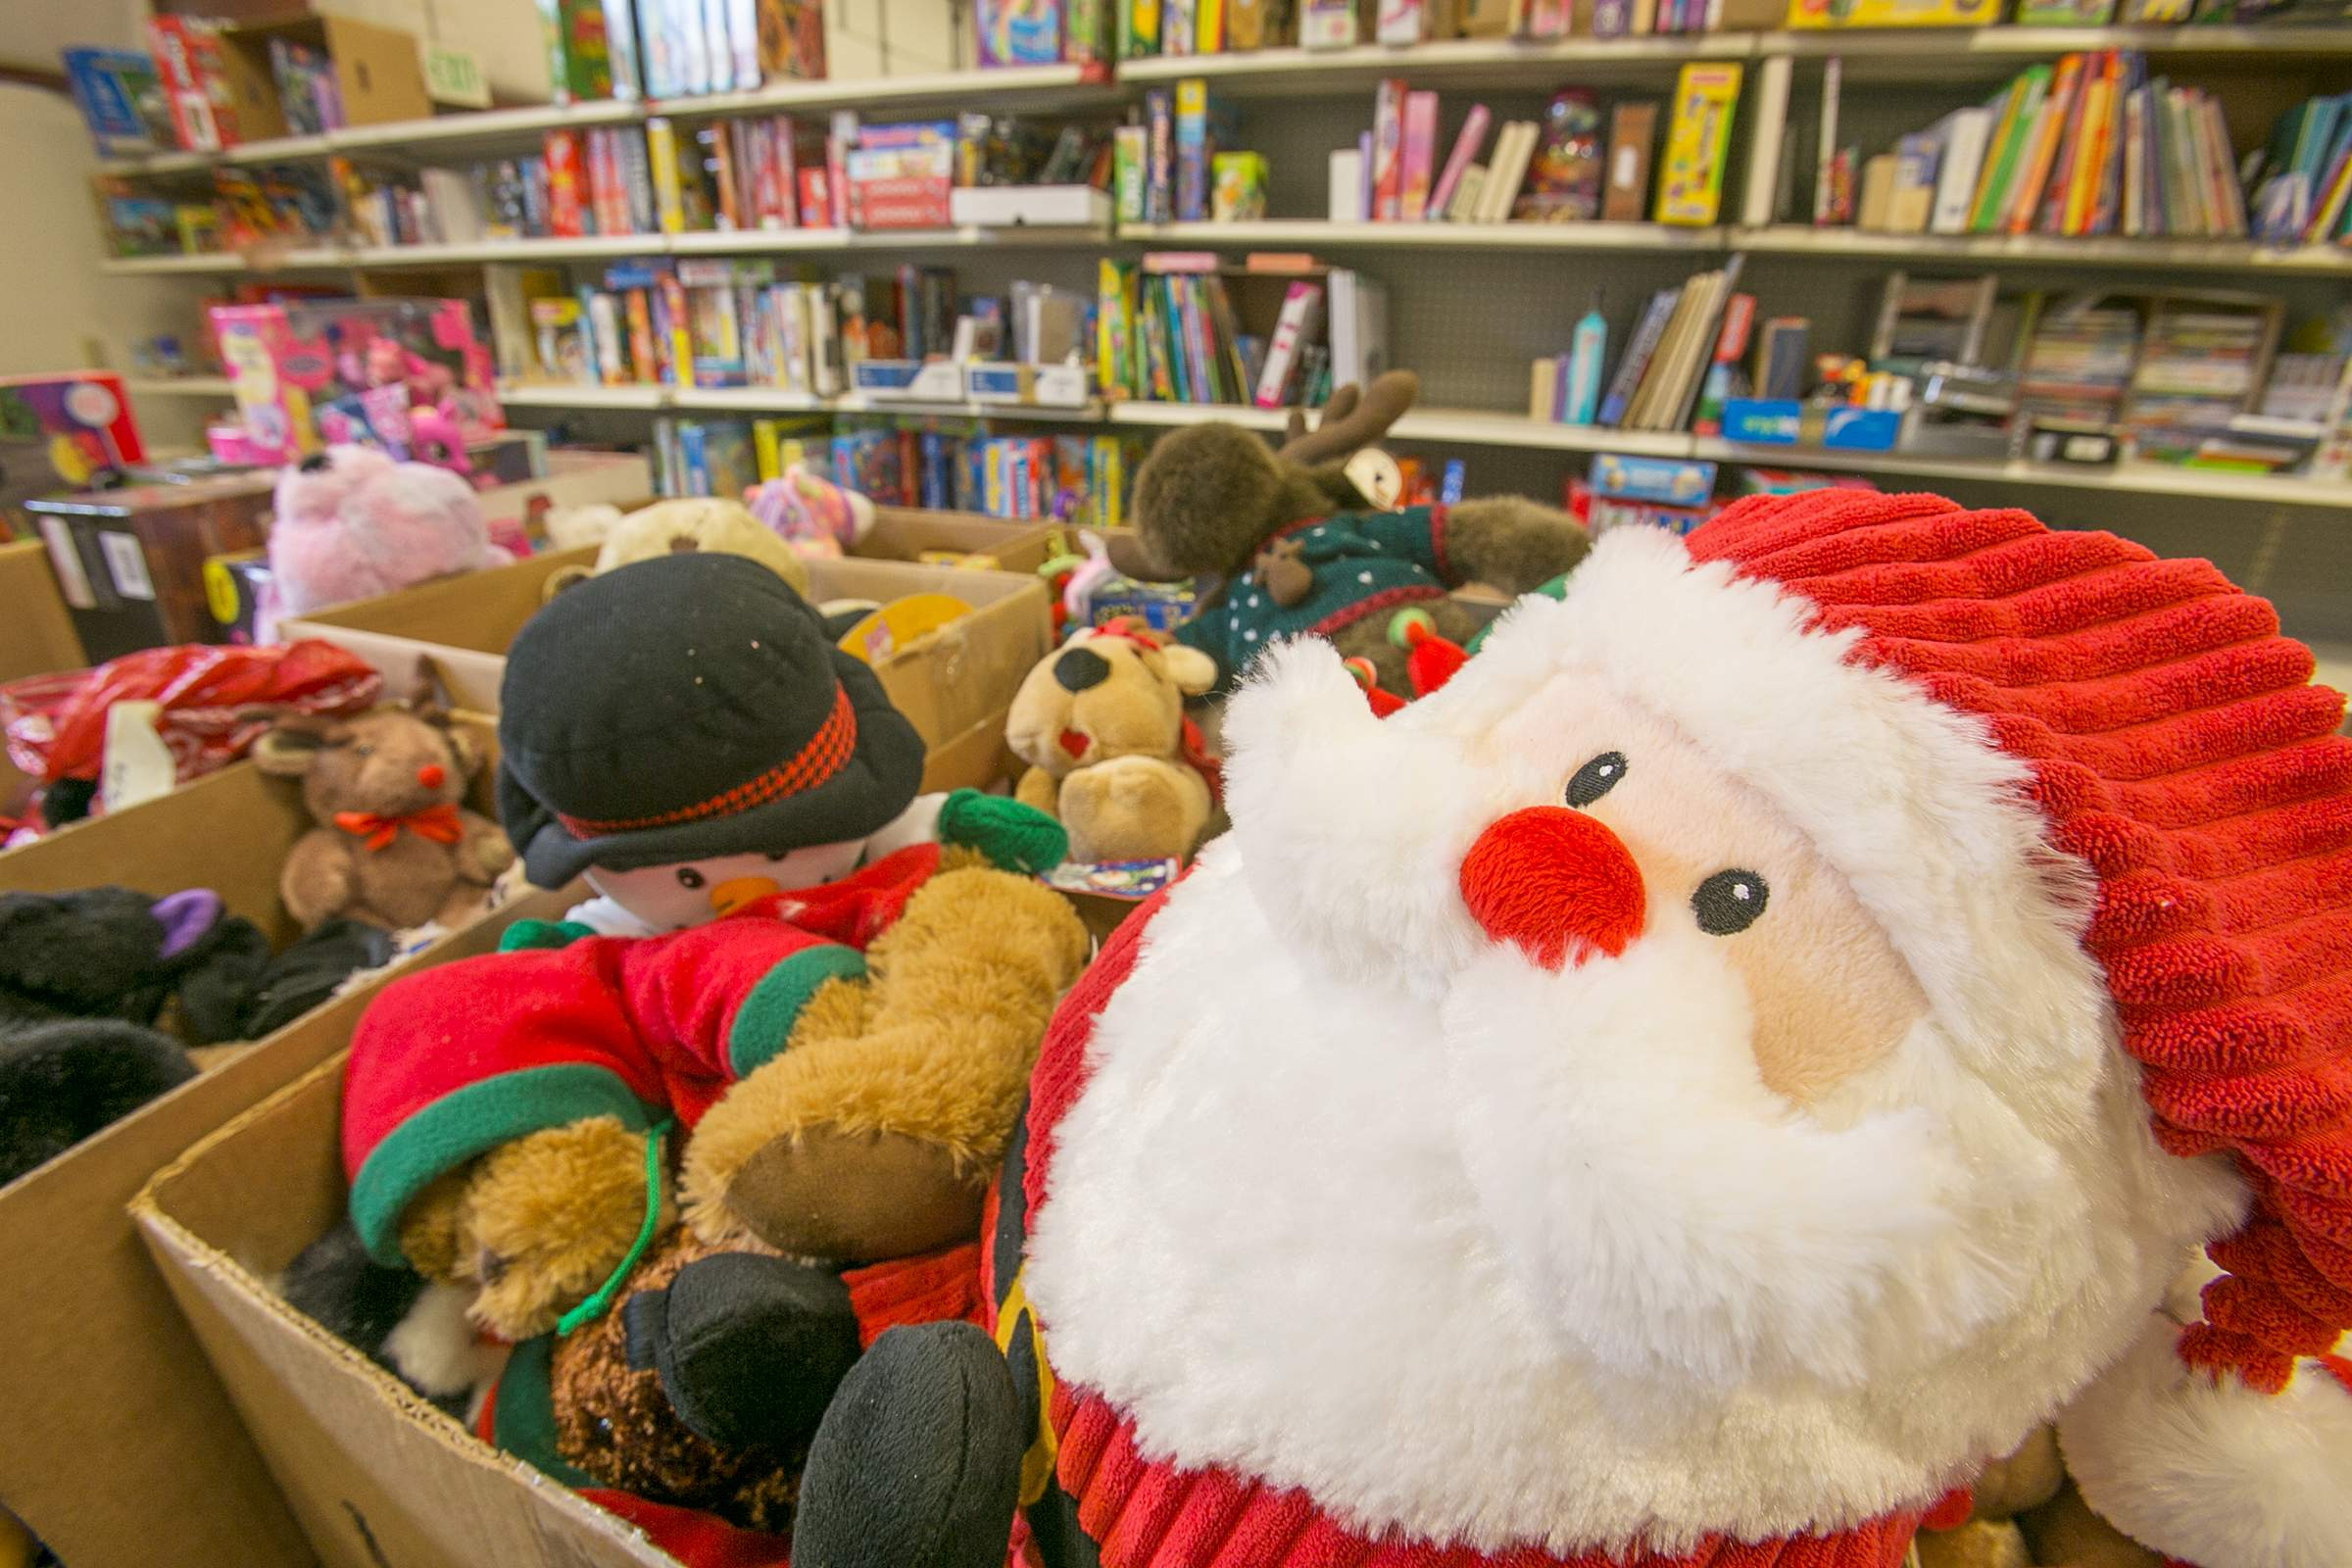 Project Merry Christmas makes holiday merry for families in need